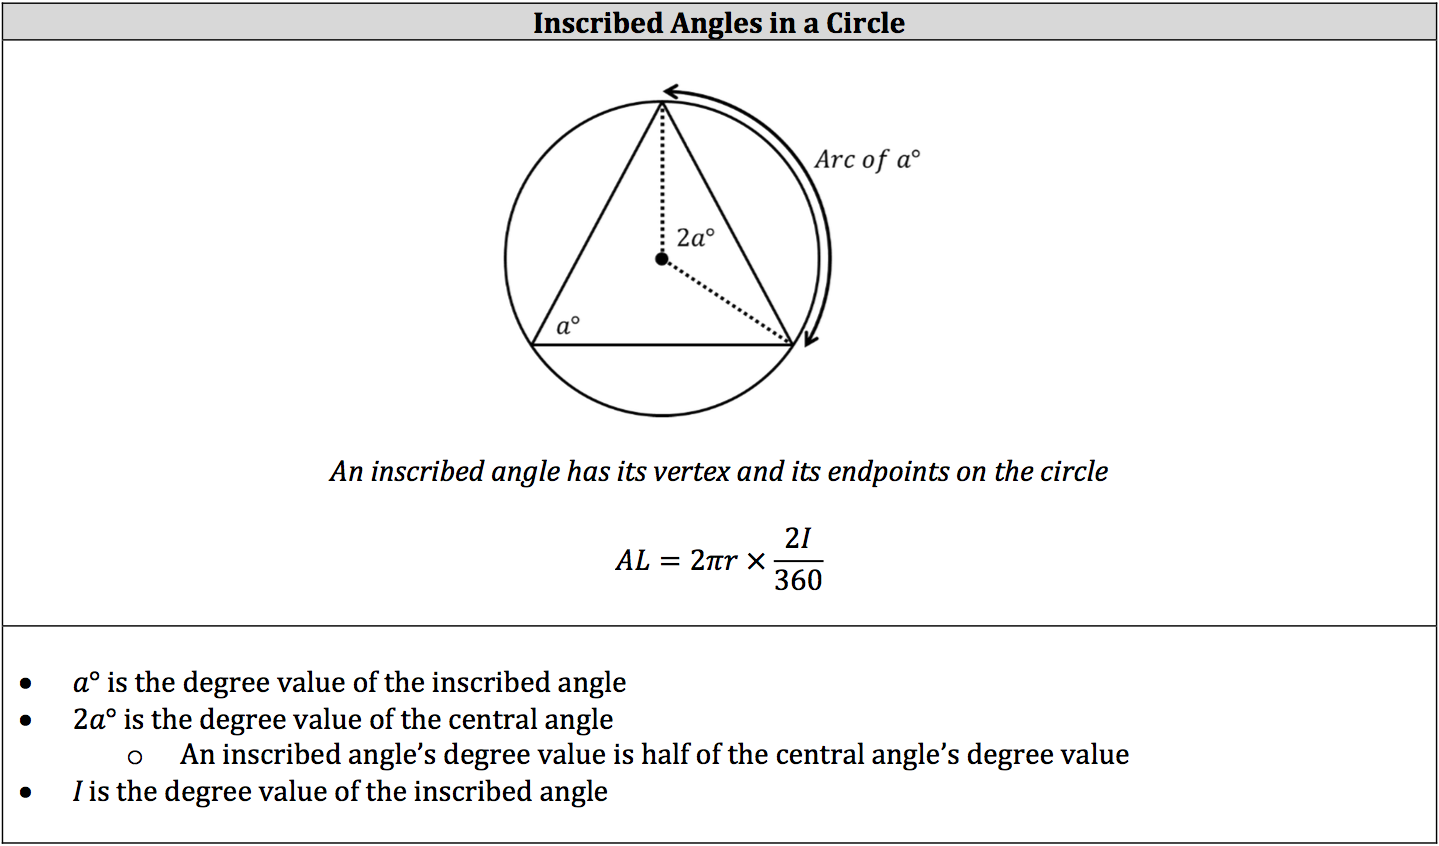 inscribed-angles-in-a-circle